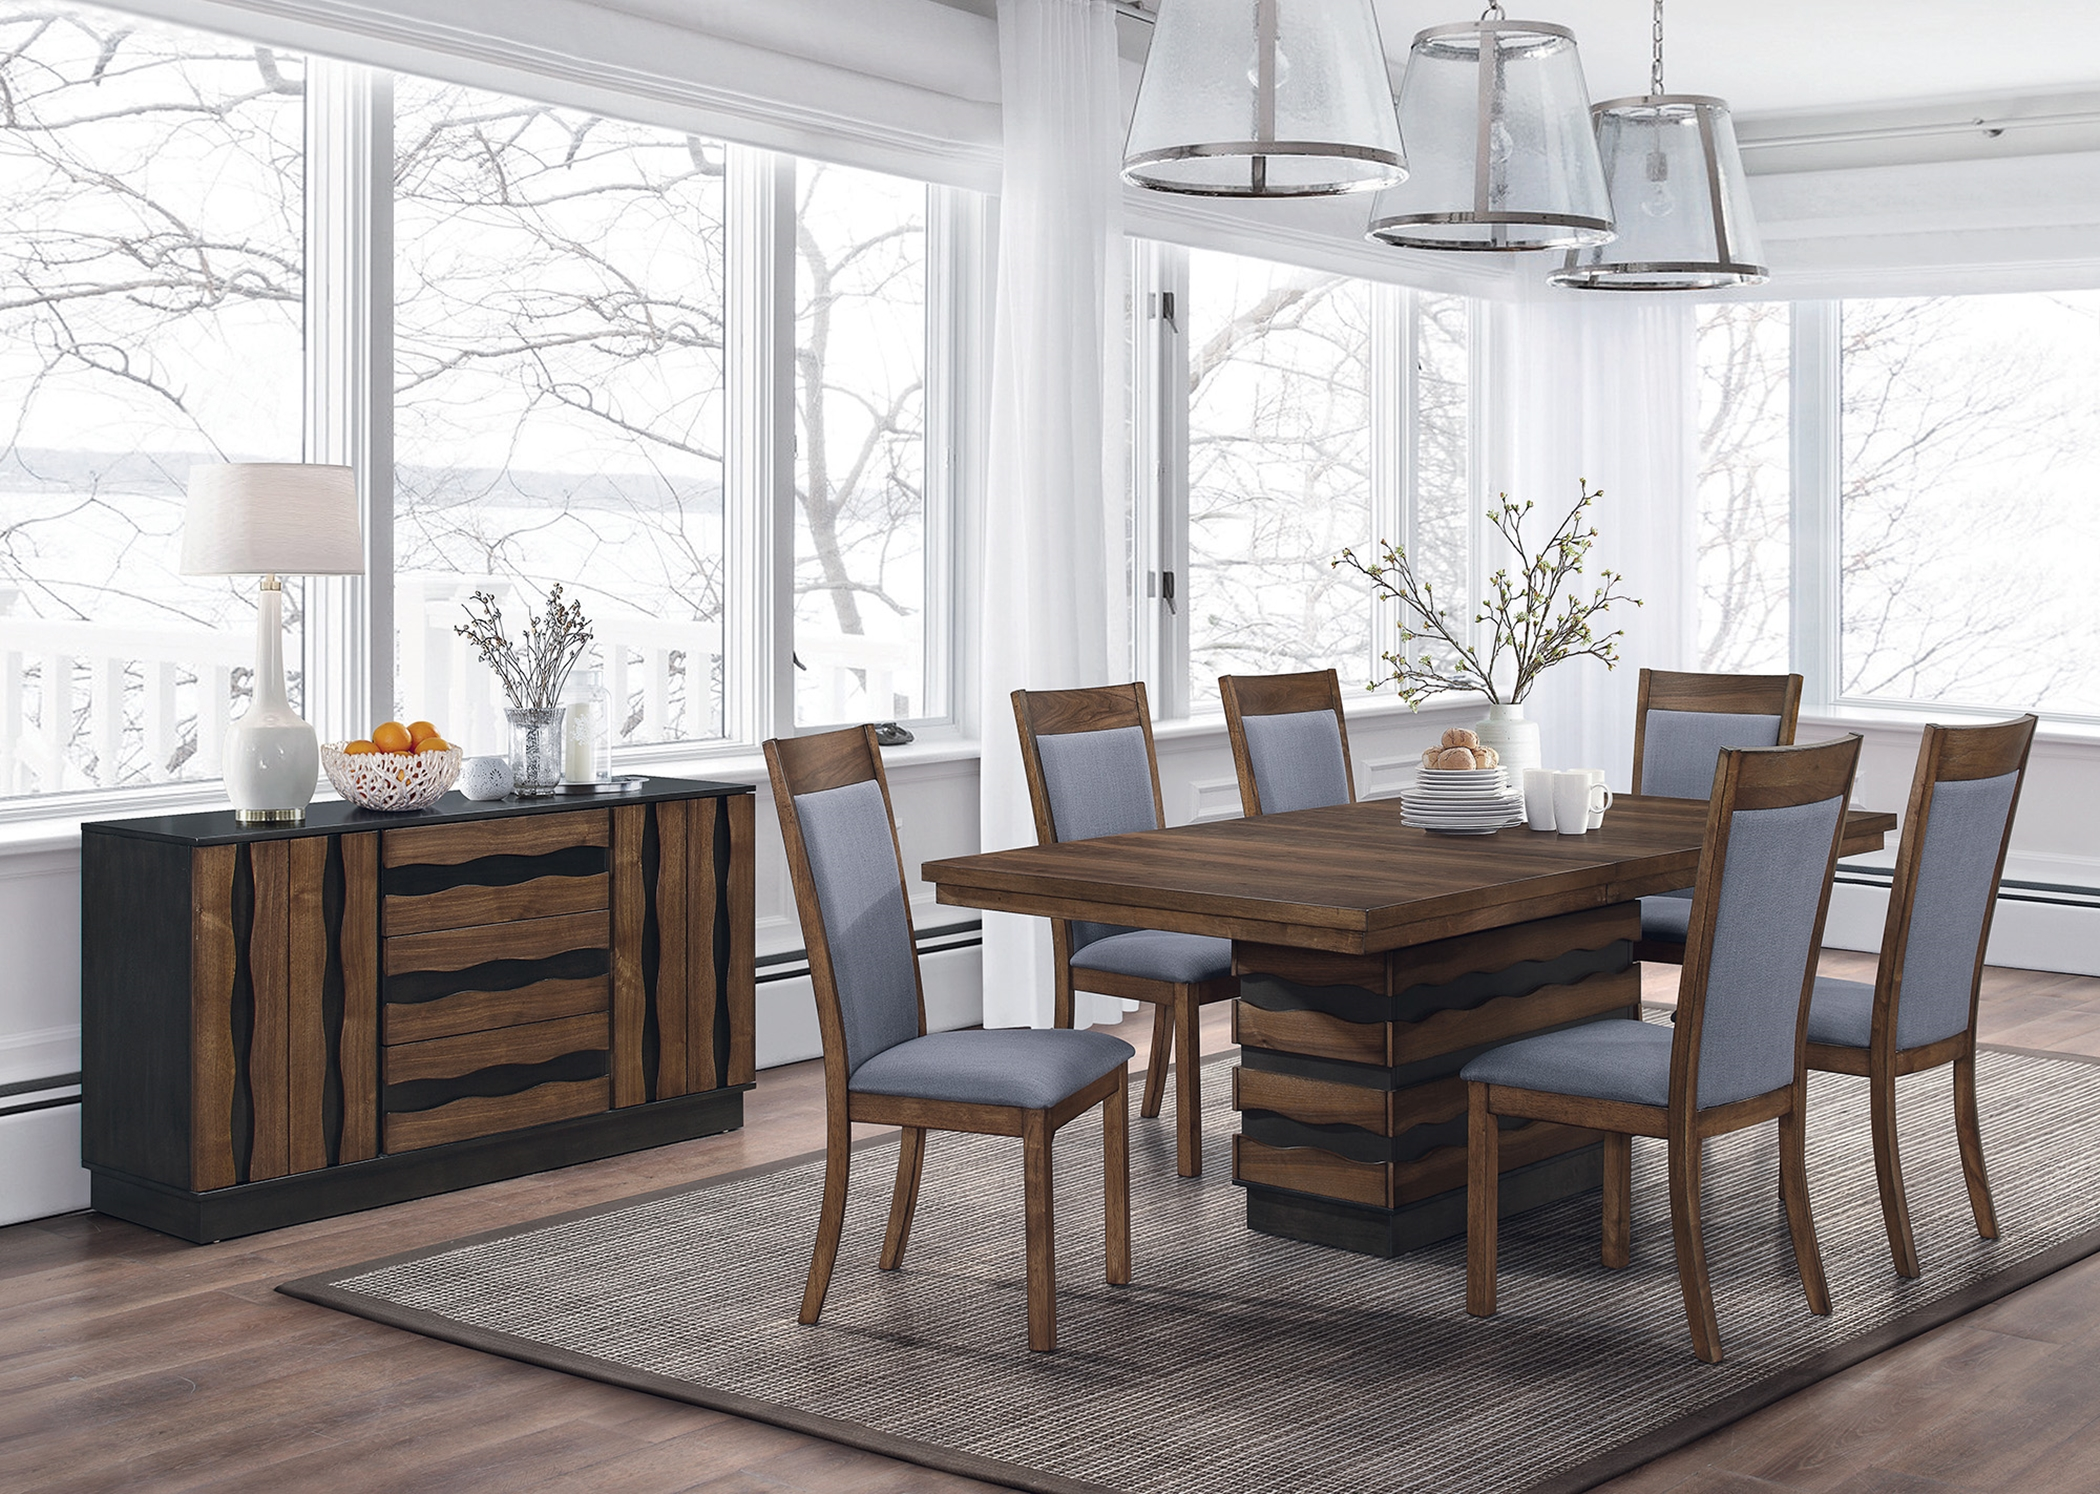 Octavia Rustic 7 Pc. Set